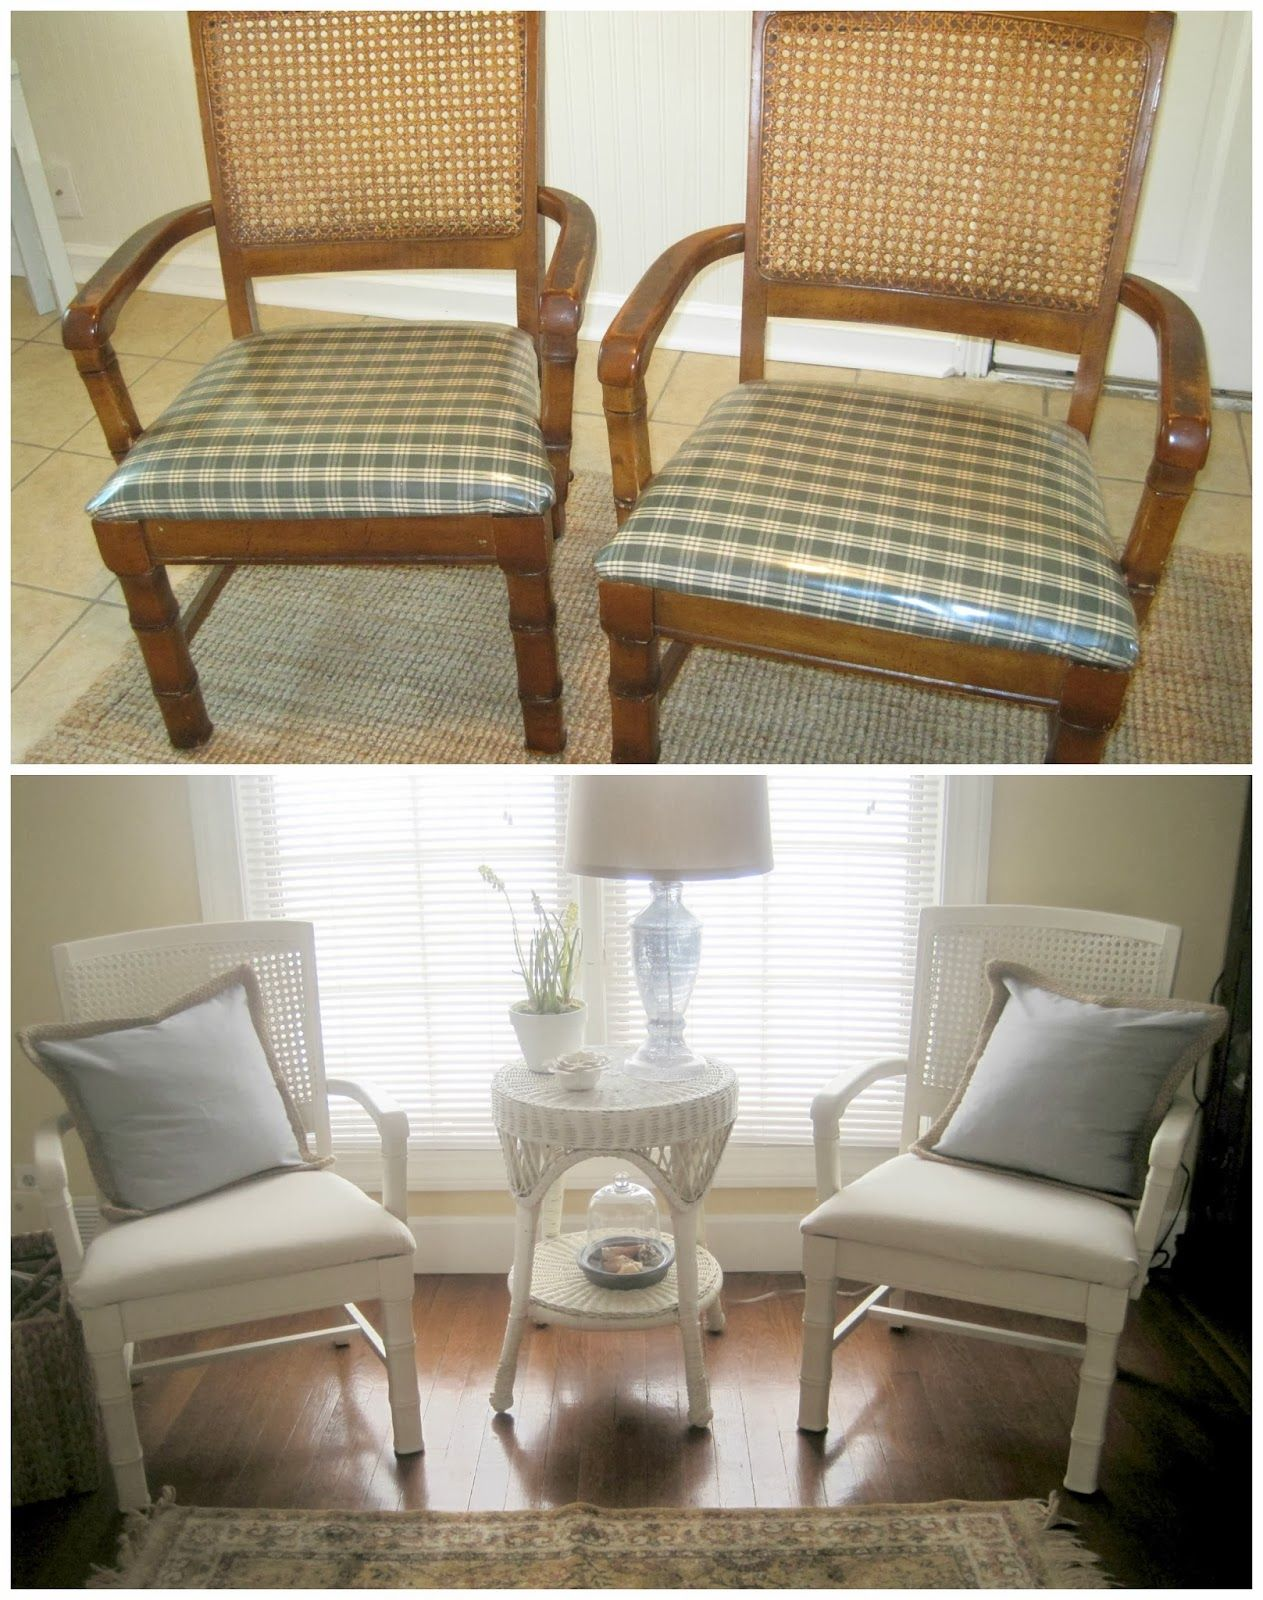 It Takes Two Making Over Two Chairs Diy Furniture Couch Decor Diy Furniture Bedroom